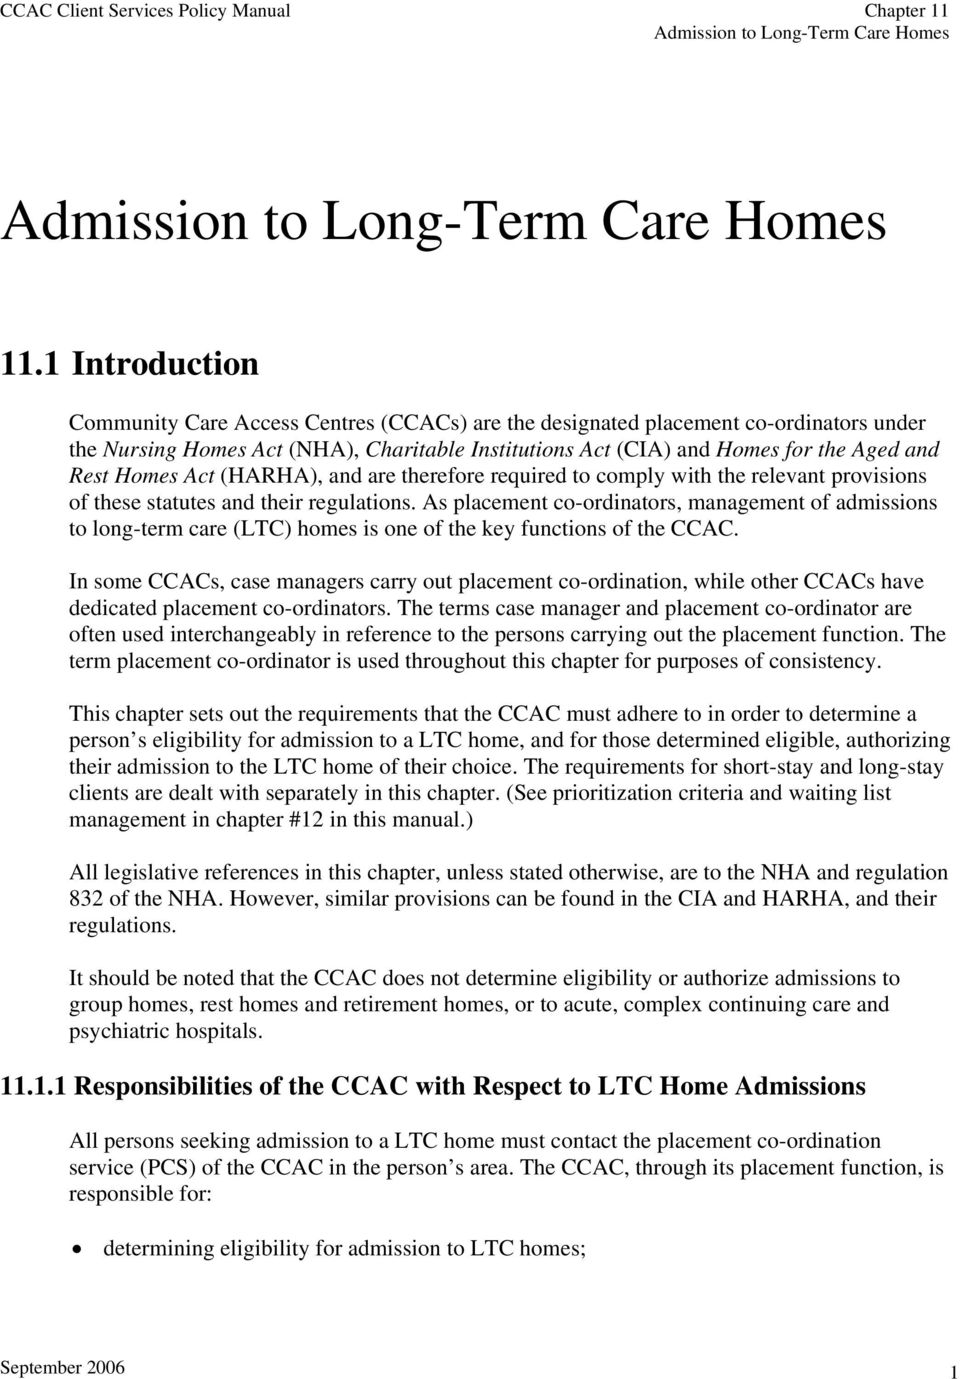 As placement co-ordinators, management of admissions to long-term care (LTC